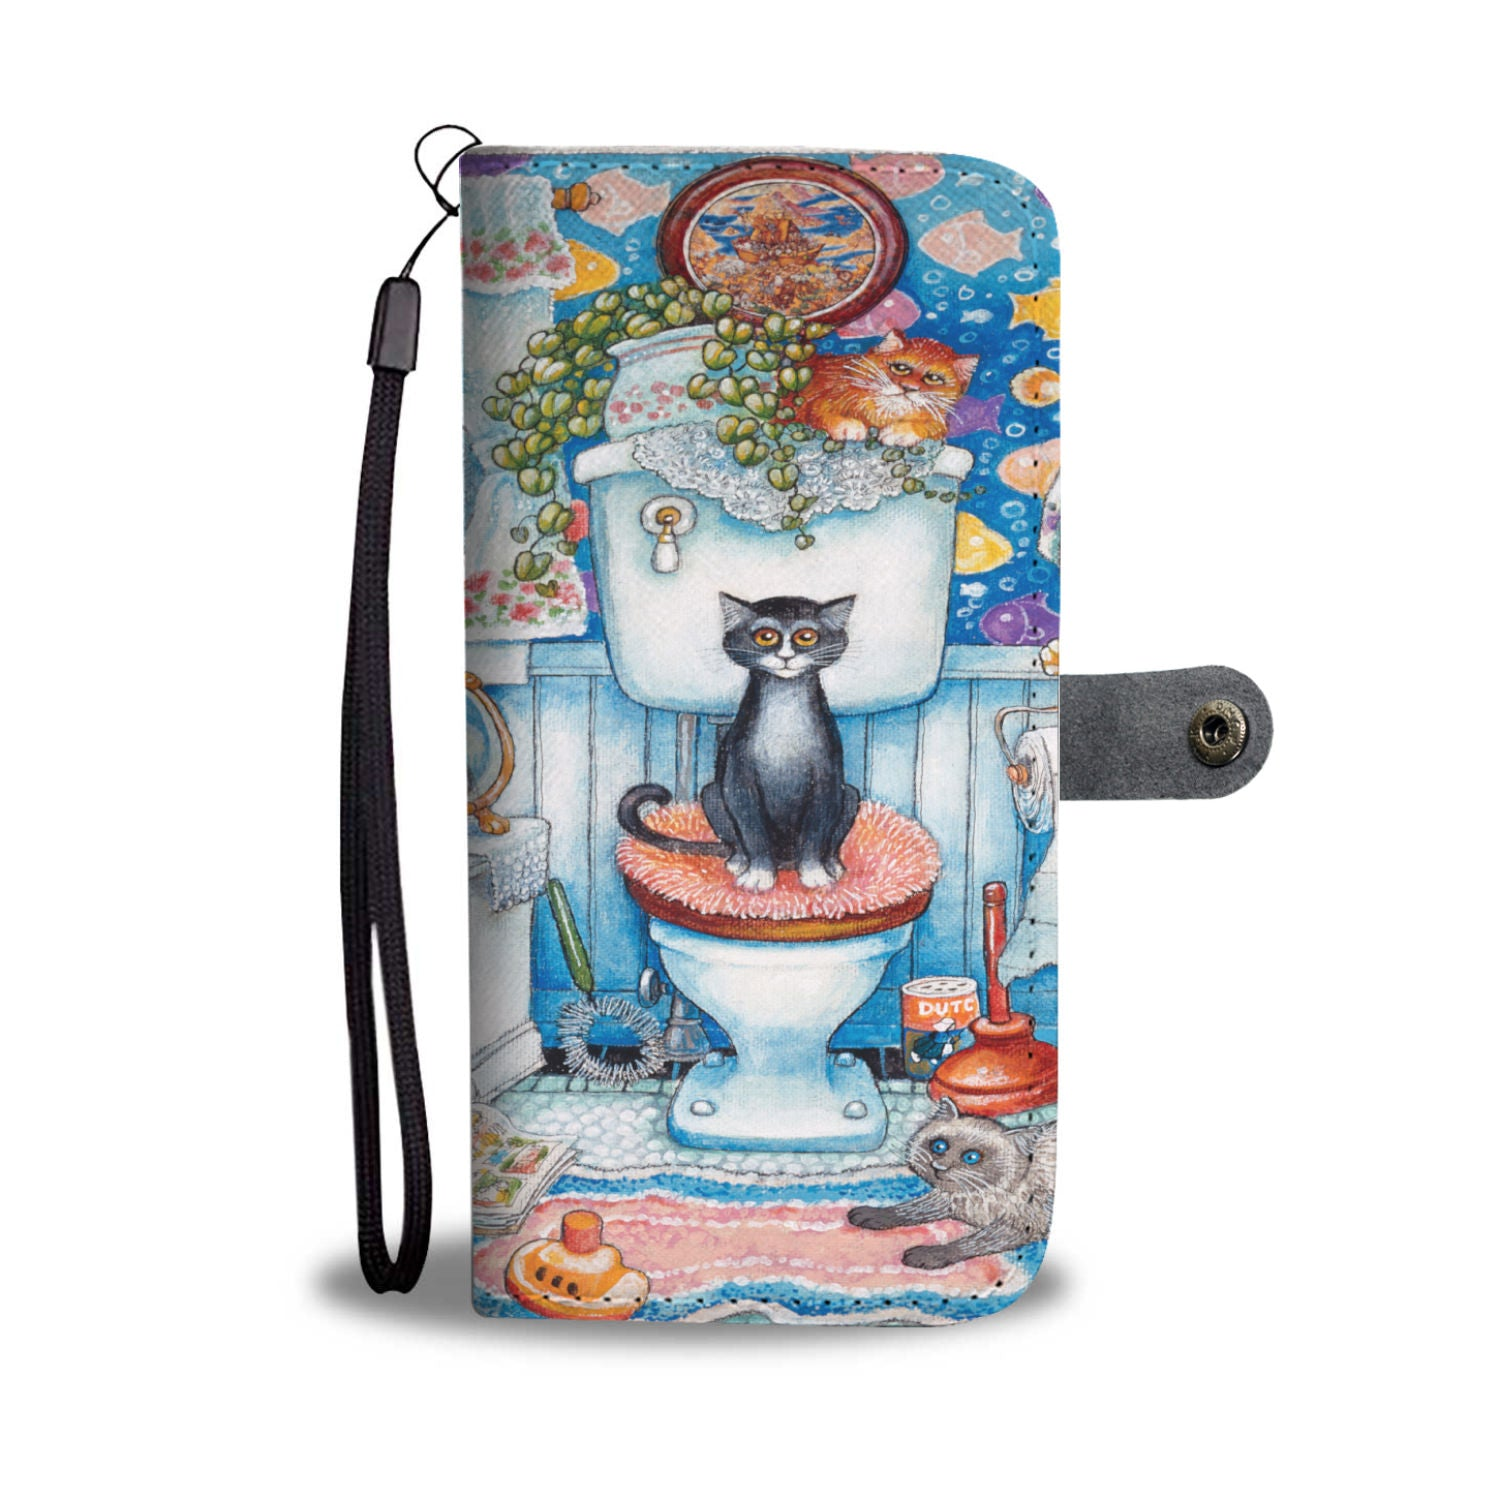 Cubbys Bathroom Wallet Case